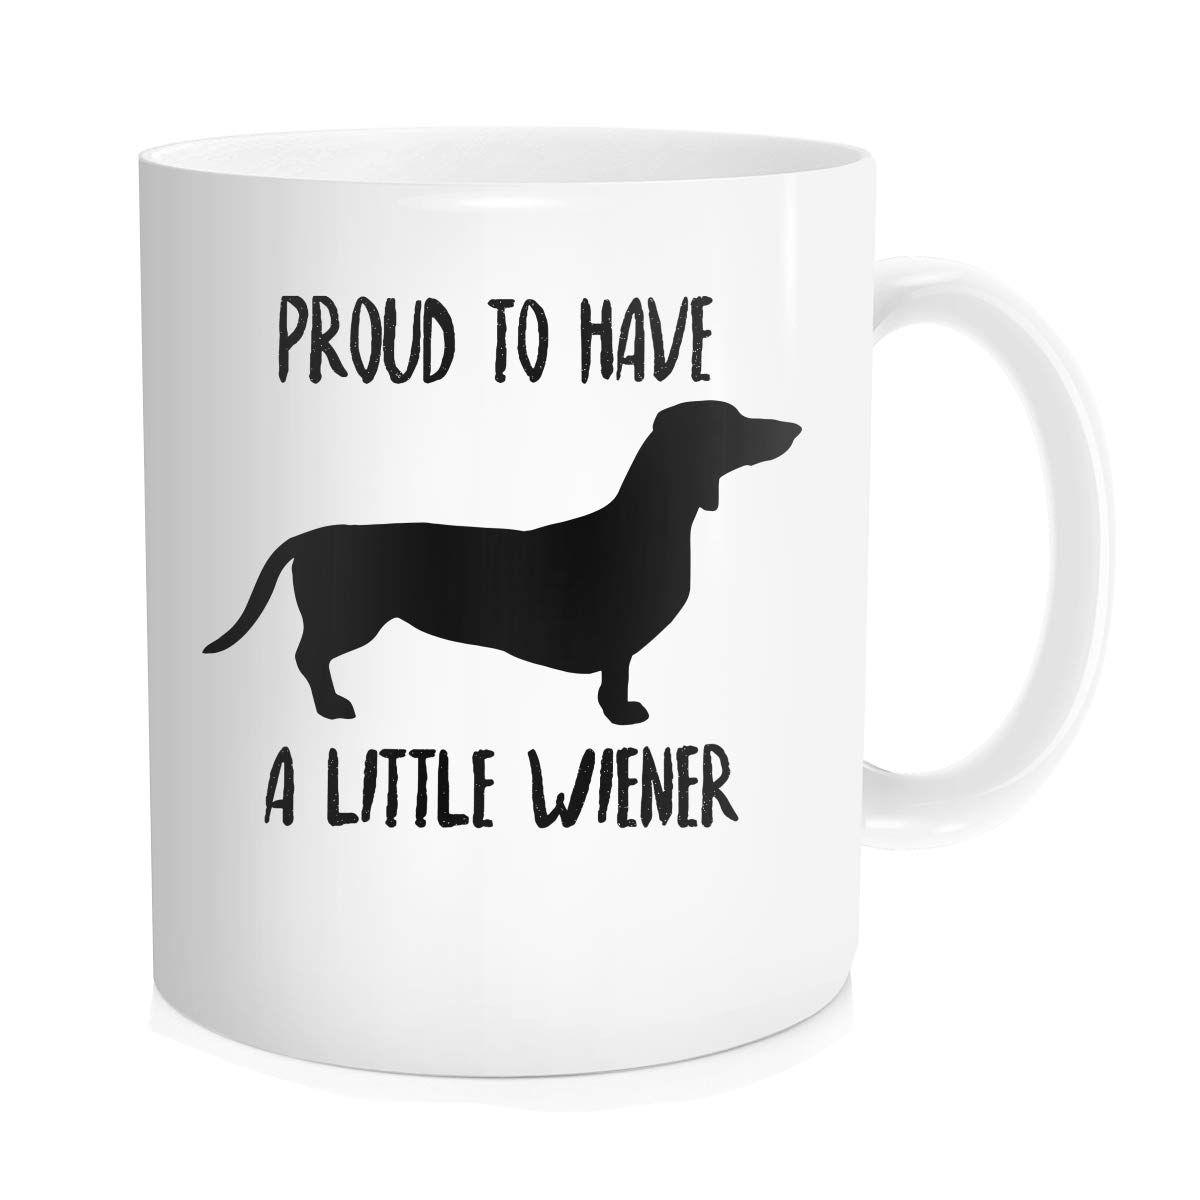 Hasdon-Hill Dachshund Coffee Mug, Proud To Have A Little Wiener, Dog Lover Gifts Best Dachshund Mom Ever Animal Pet Owner Rescue Gift, Funny Novelty Tea Cup ...